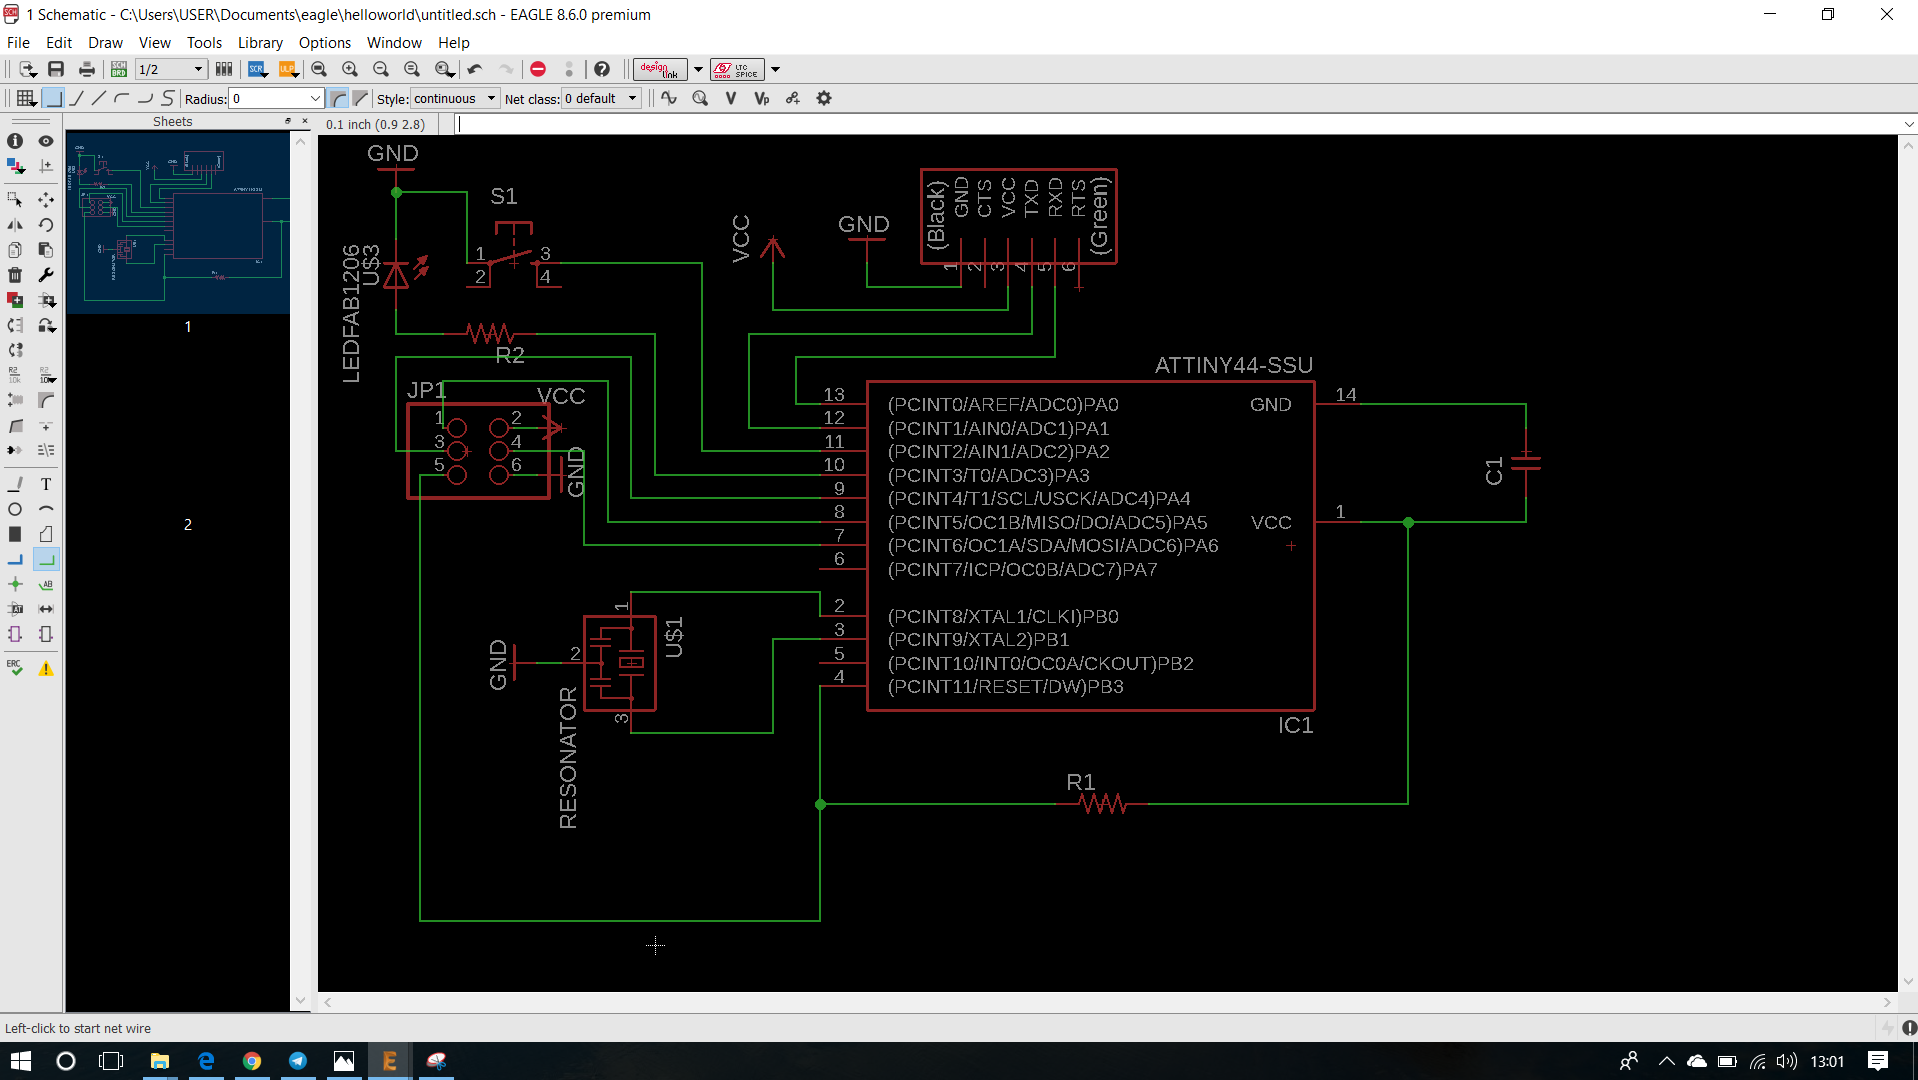 Week 7 Electronics Design Circuit Layout Volts Electrical Software After Completing The Schematic Check For Any Erc Errors And Then Switch To Board View